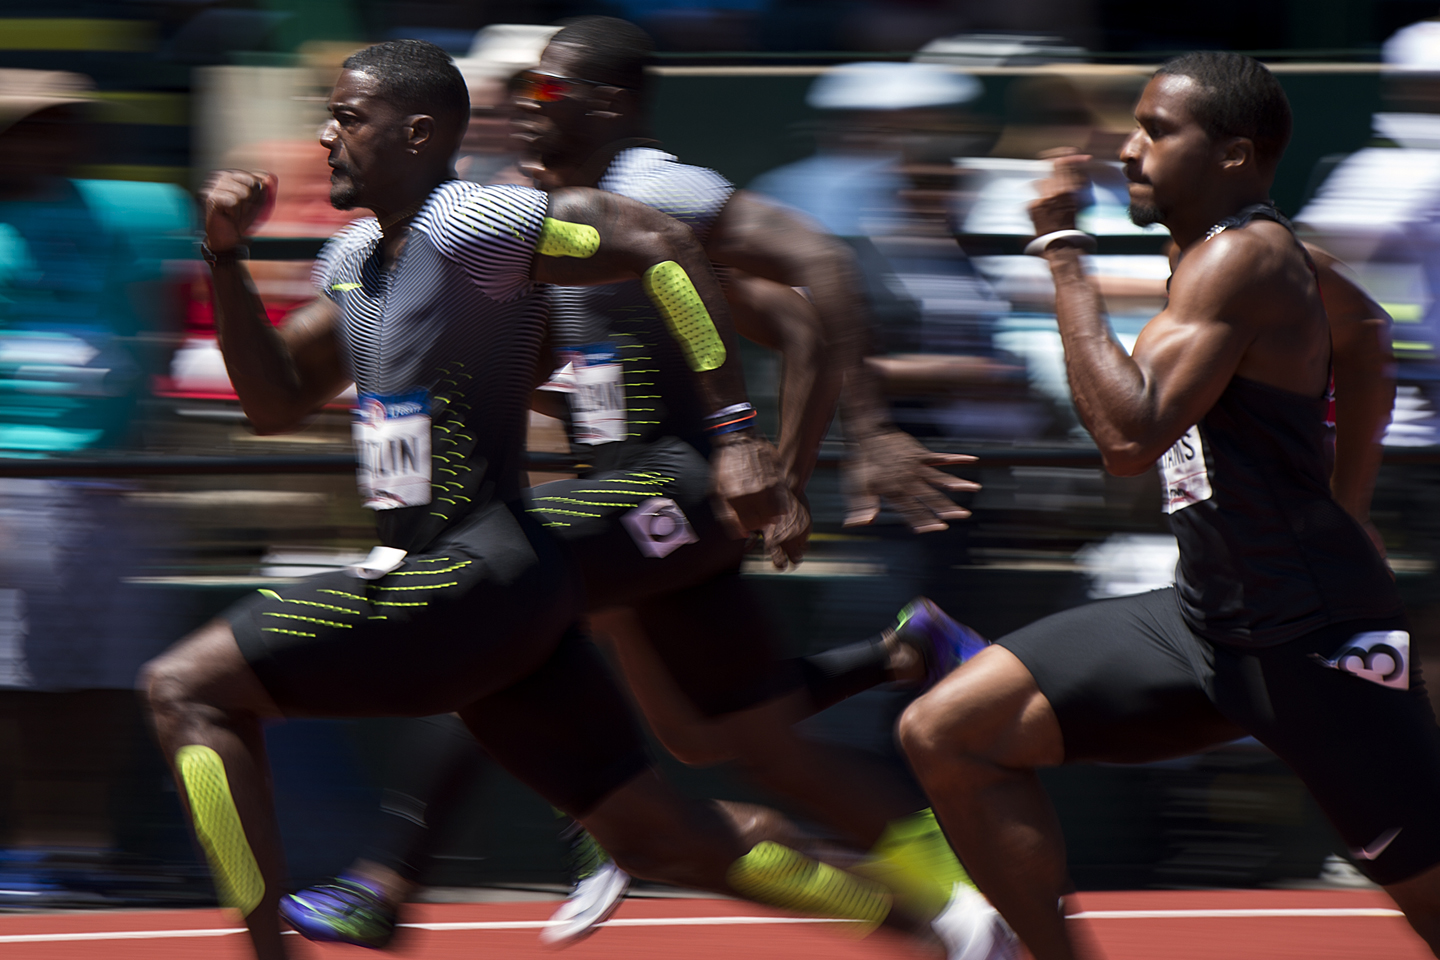 Justin Gatlin (L) leads his heat of the 100 meters during the first round on Day 2 of the Olympic Track and Field Trials at Hayward Field on July 2, 2016, in Eugene, Oregon.